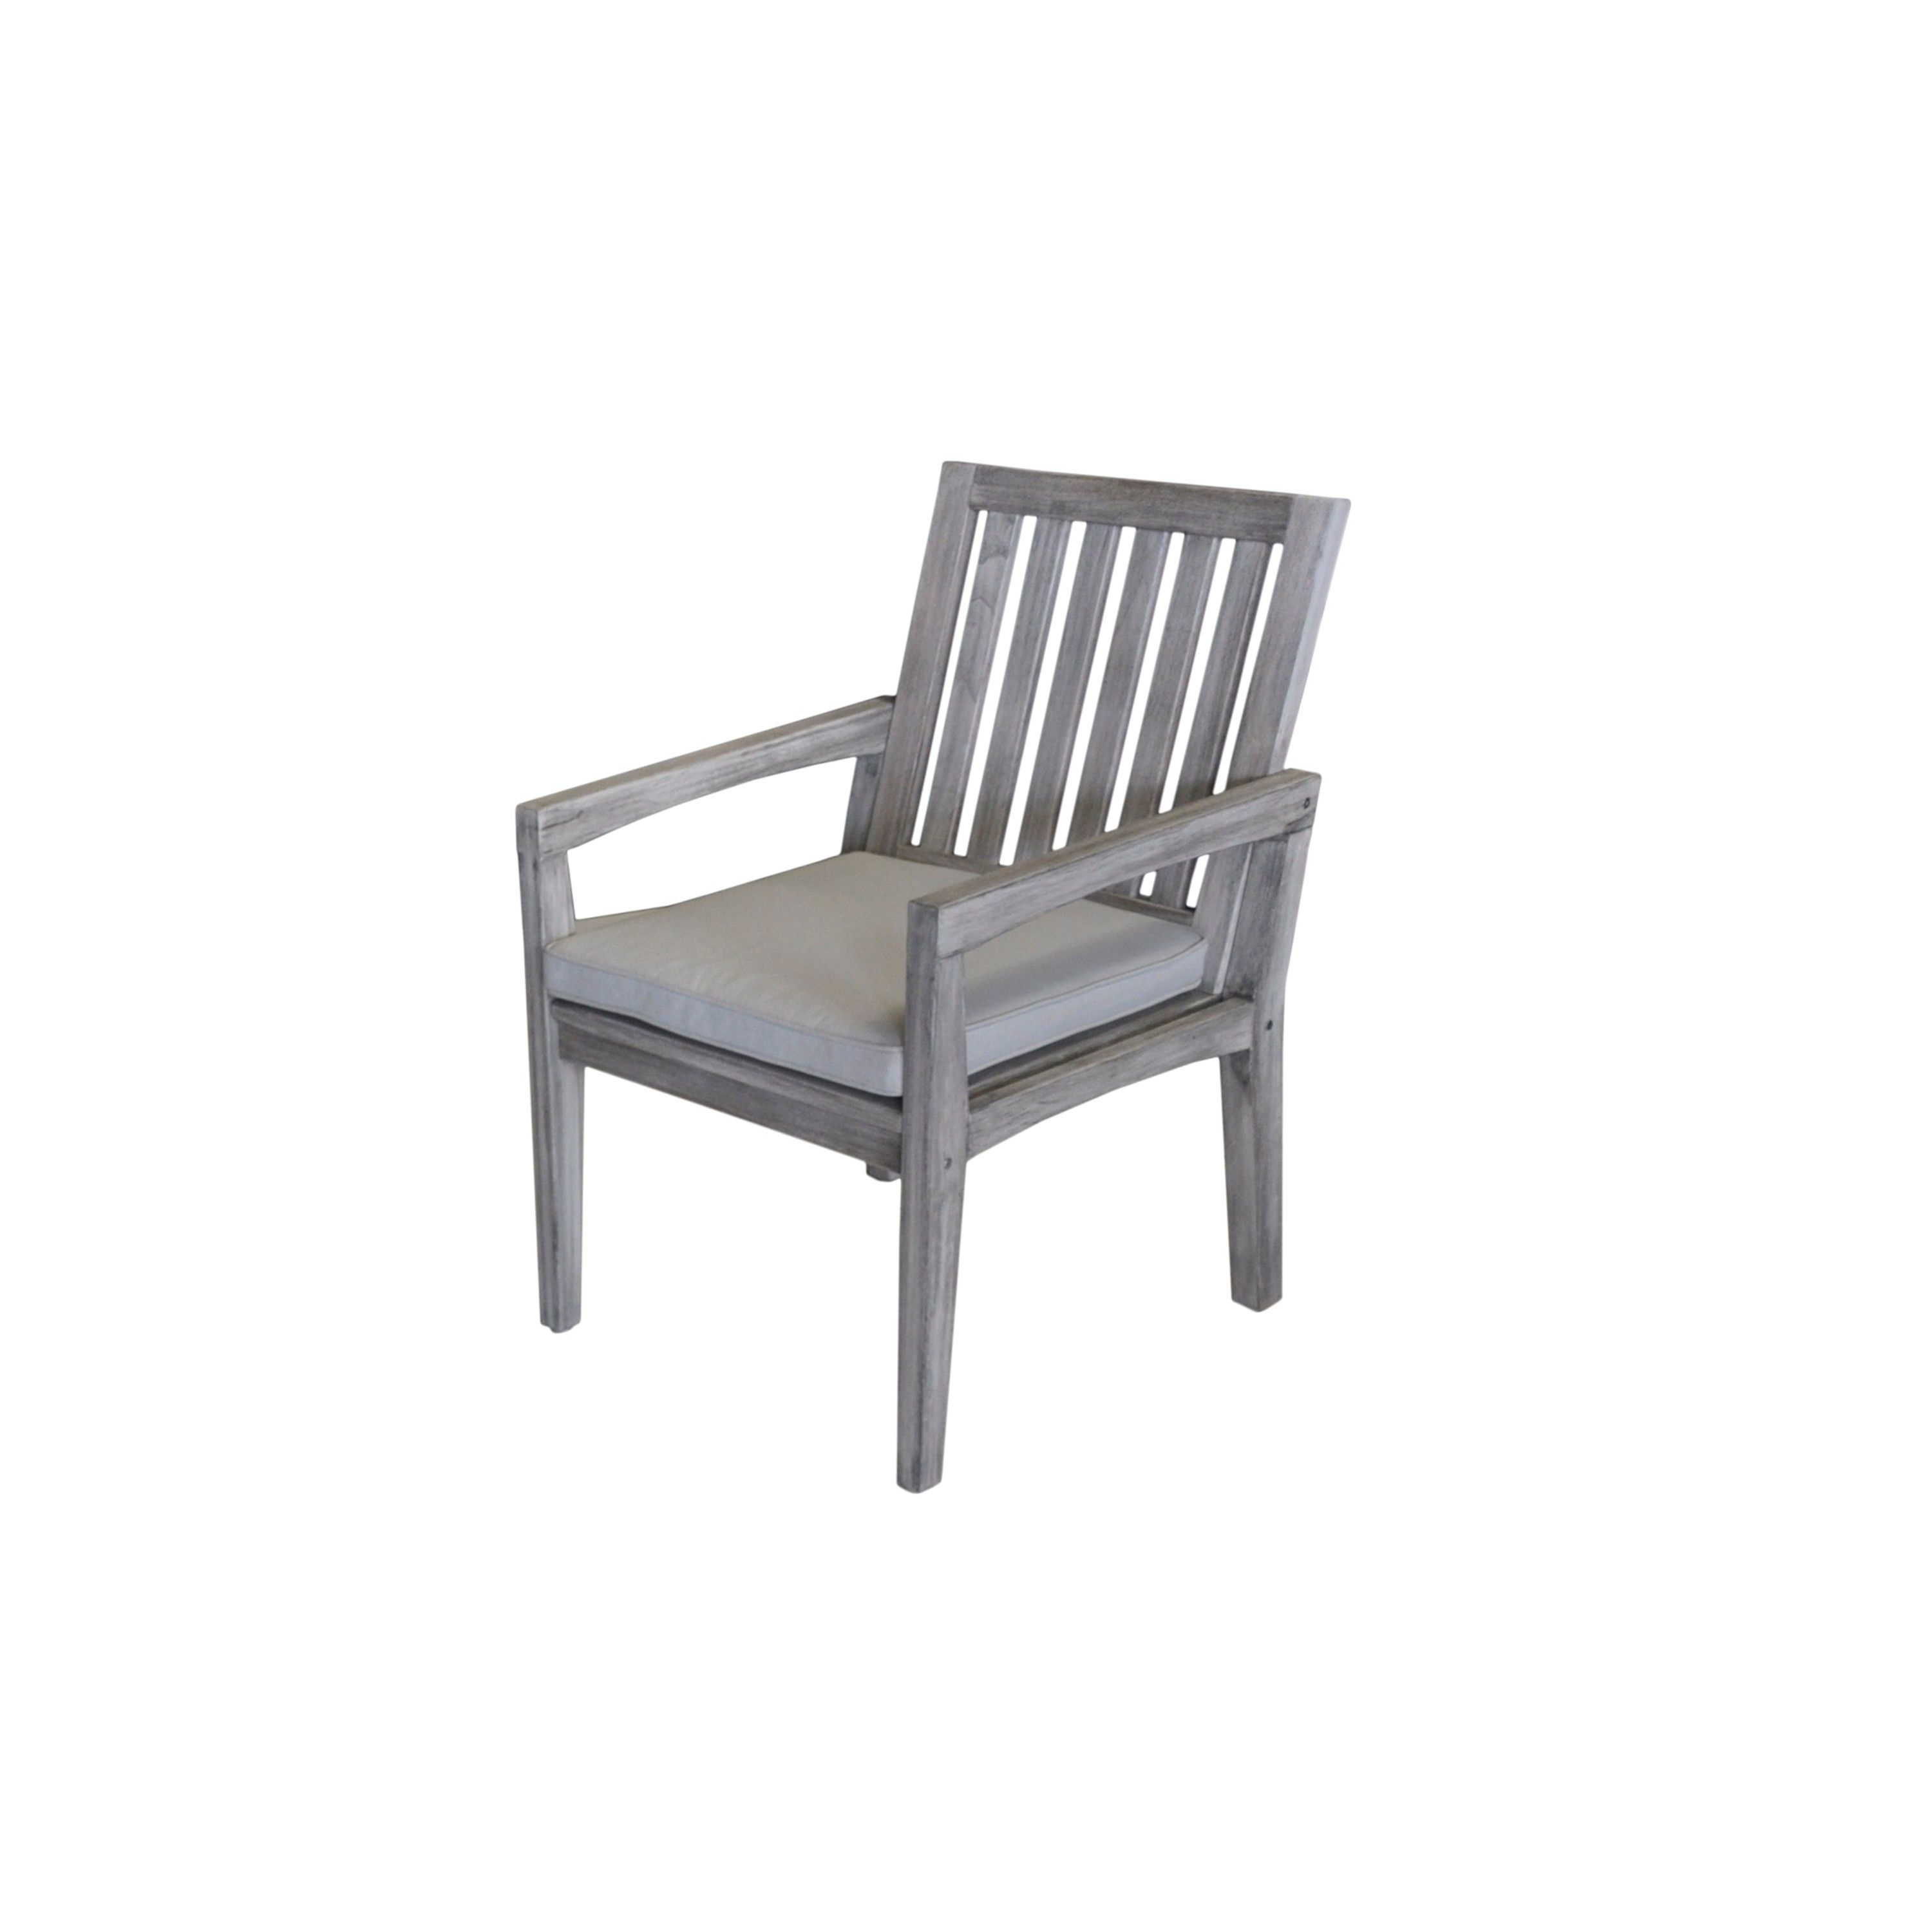 Havenside Home Surfside Outdoor Lounge Chairs Regarding Newest Havenside Home Surfside Grey Teak Outdoor Dining Chair With (View 5 of 25)